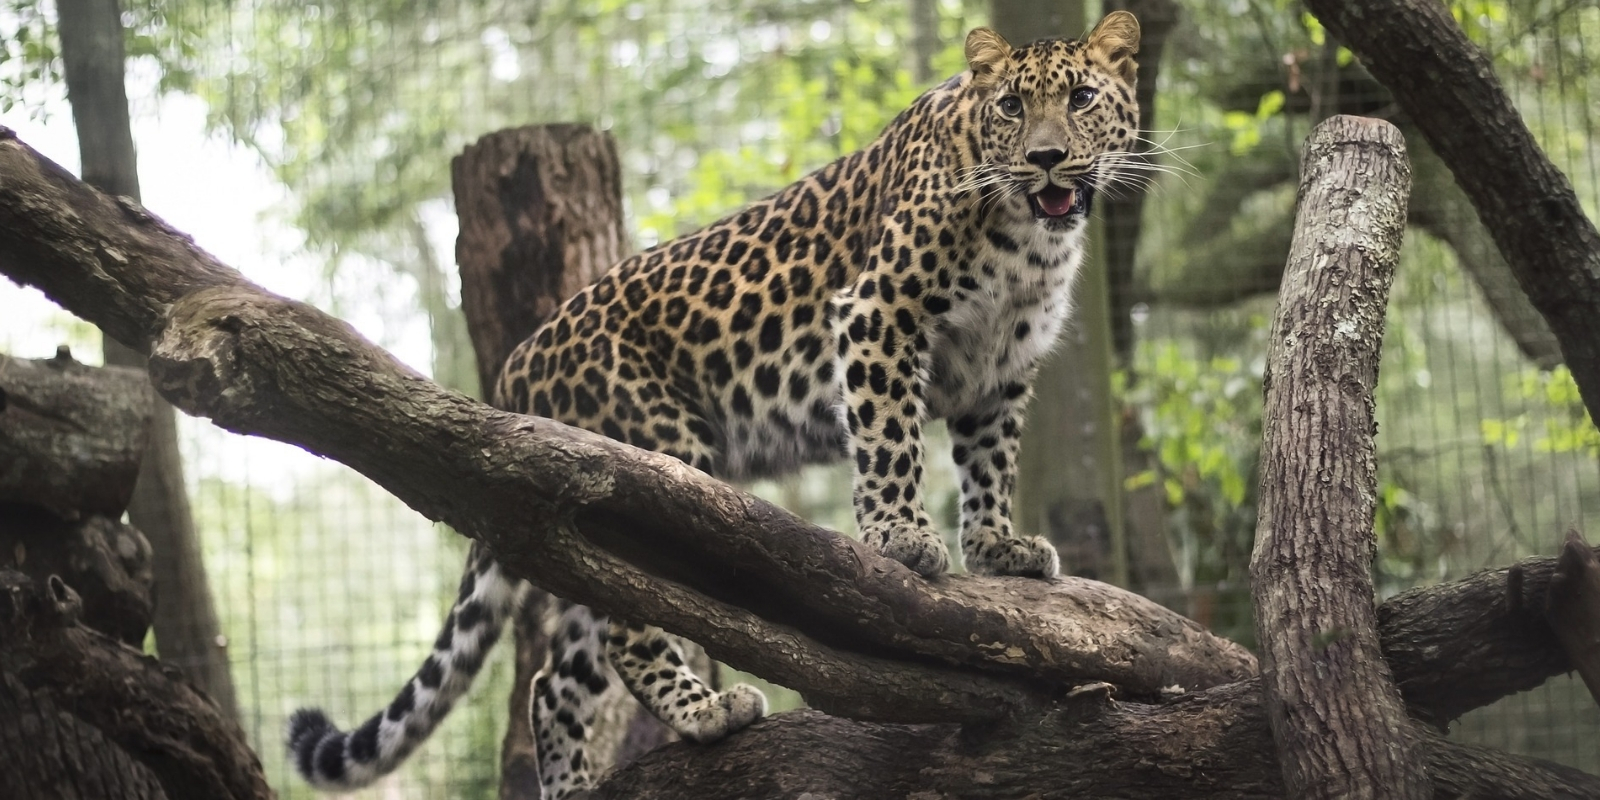 Leopard at Jacksonville Zoo